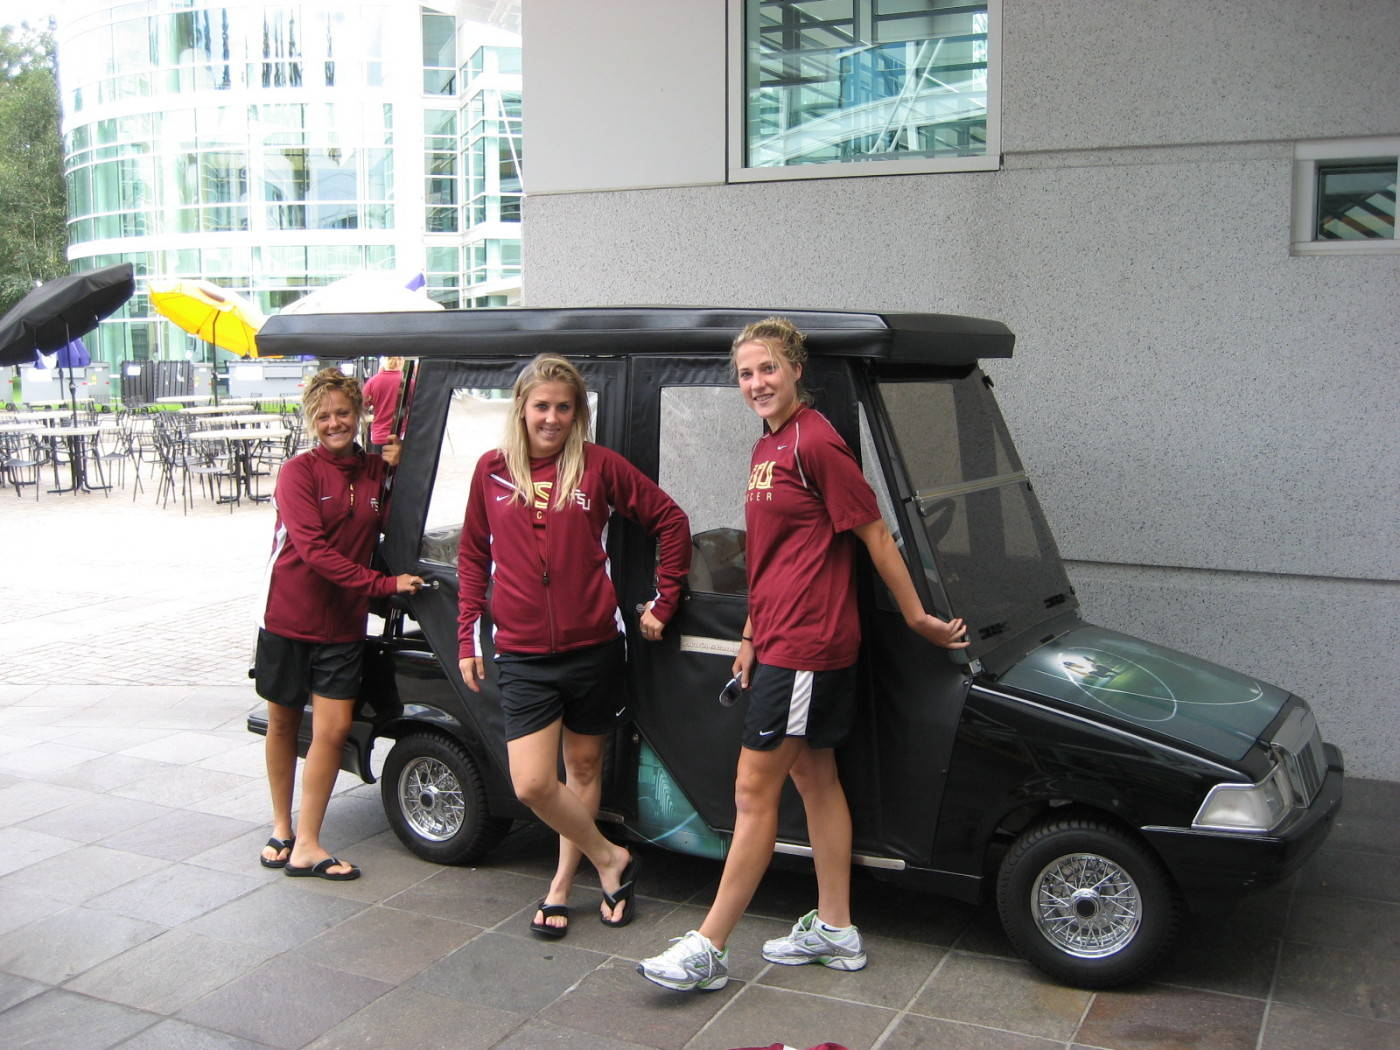 Sara, Victoria and Becky look to hitch a ride in a decked out Nike golf cart.